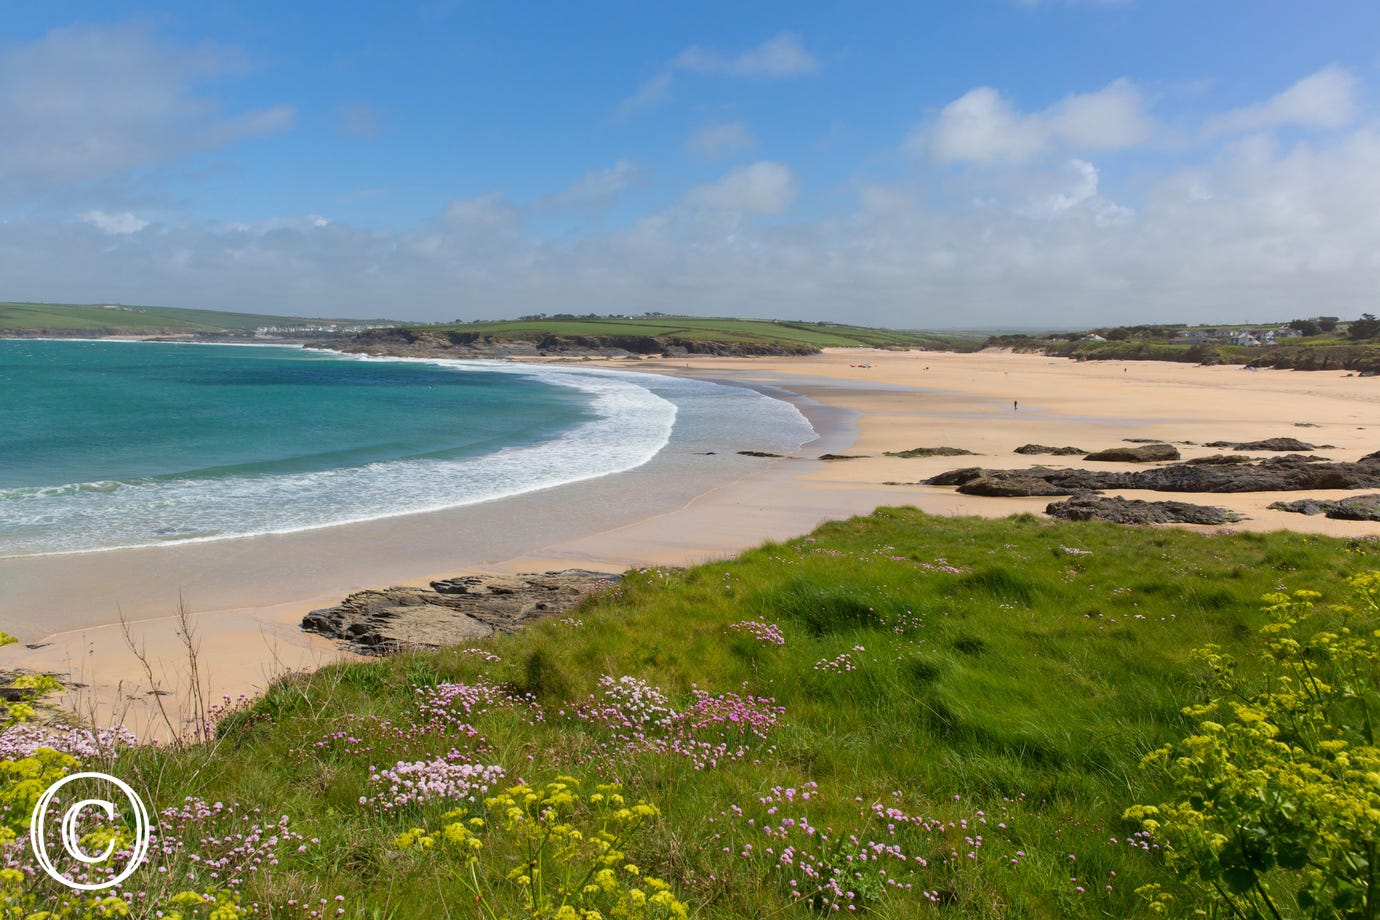 Harlyn Bay is a 6 minute drive